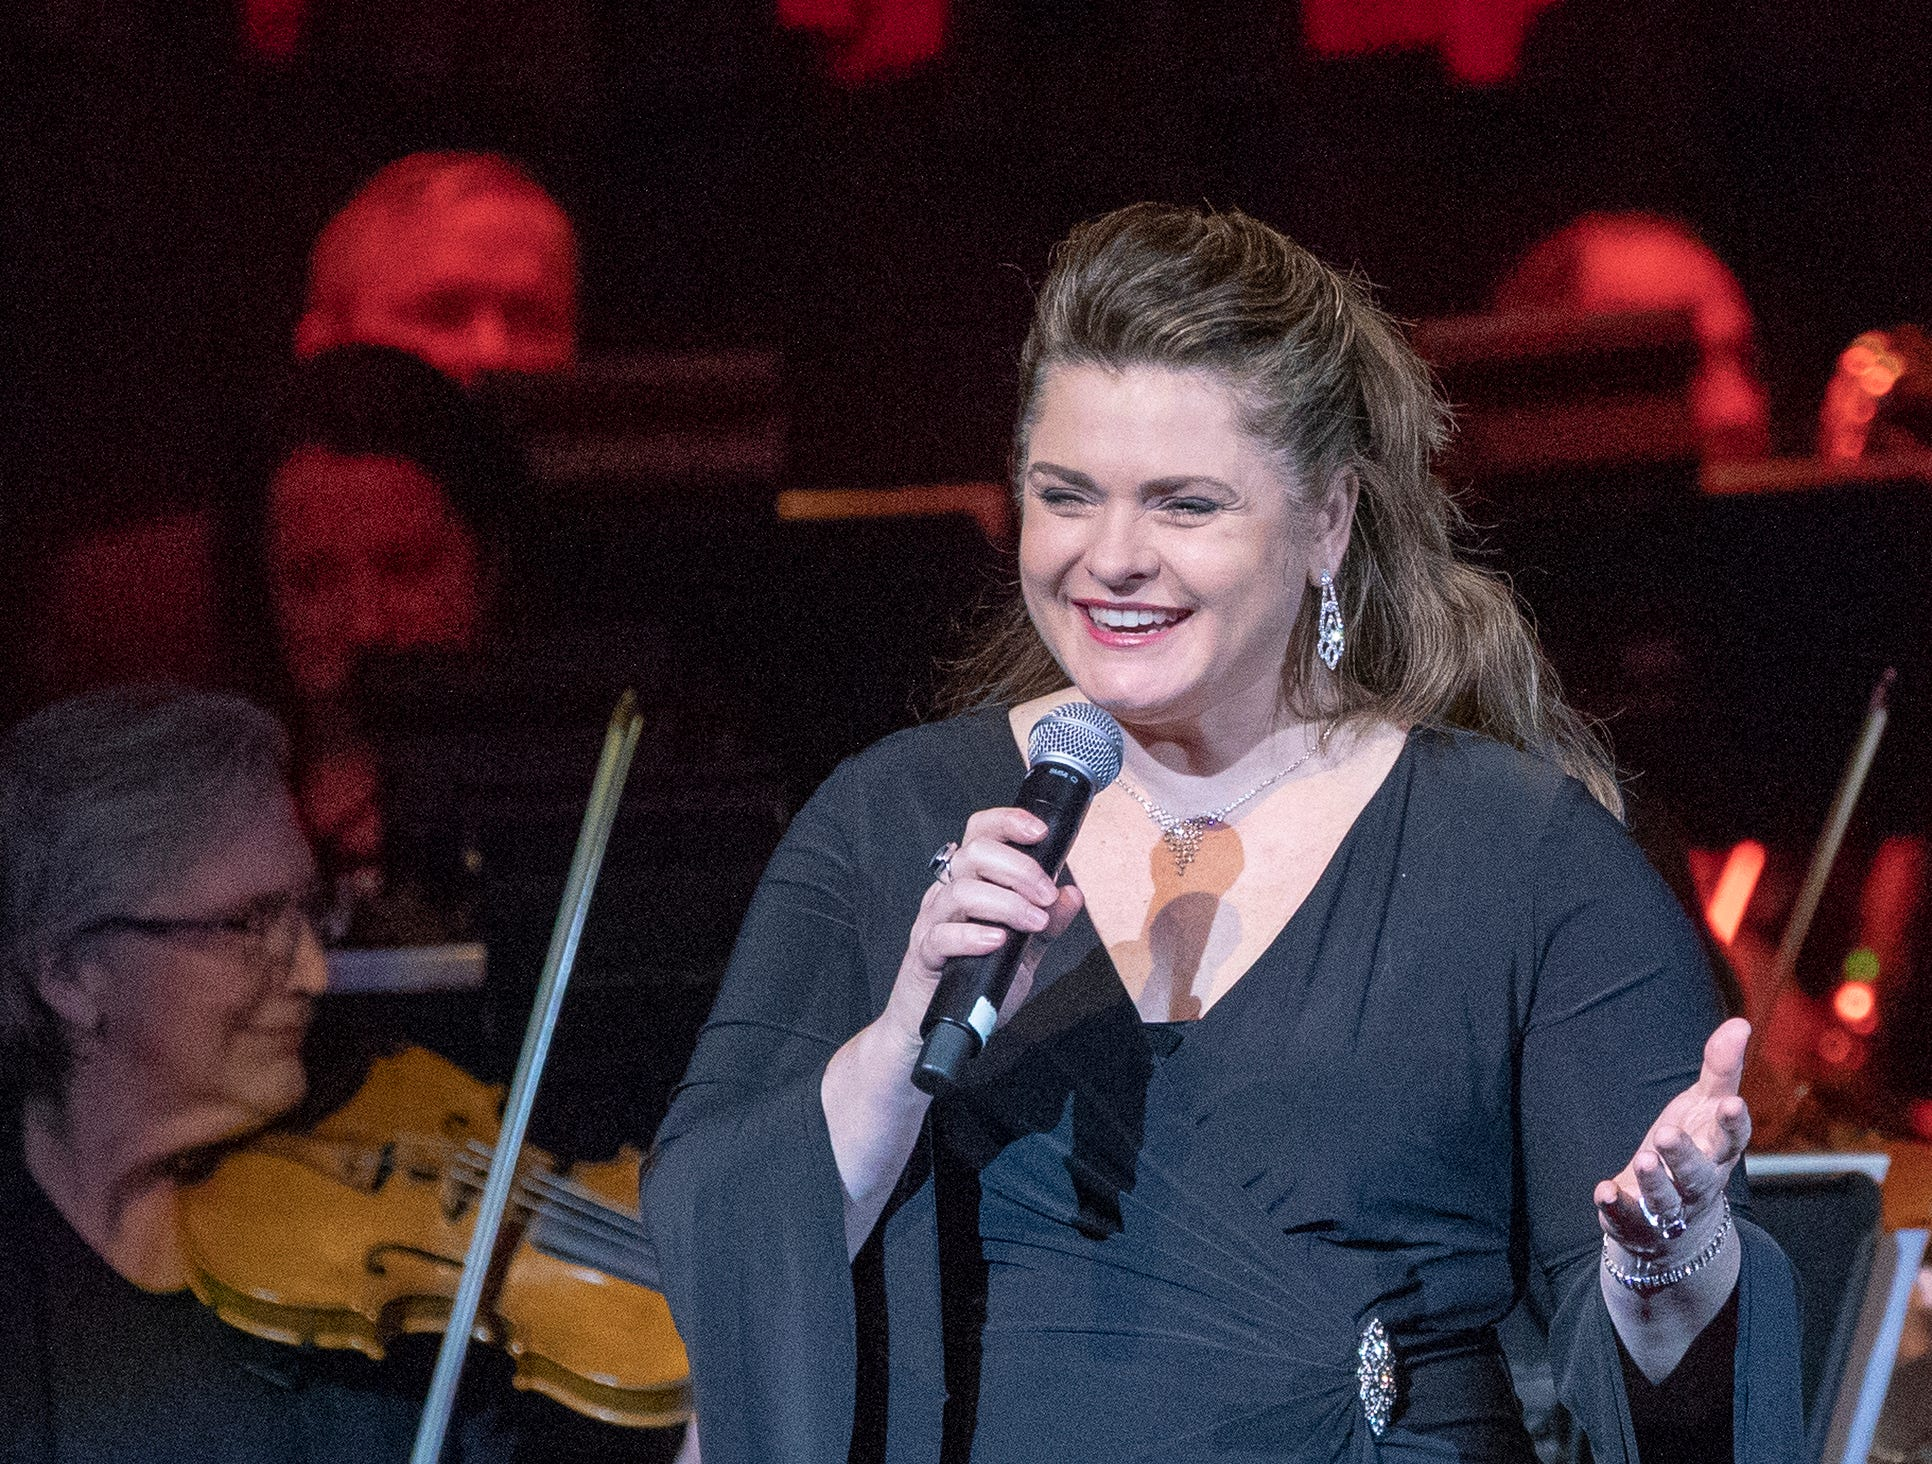 Michele McConnell on stage during the evening's Festival of Carols performance at Warren Performing Arts Center, Sunday, Dec; 9, 2018. McConnell is a soprano from Indianapolis, and has lived and performed at the highest level in New York for the past 20 years. Dance Kaleidoscope and Indianapolis Chamber Orchestra joined the Indianapolis Symphonic Choir for the show, that will be repeated several more times in the area this season.